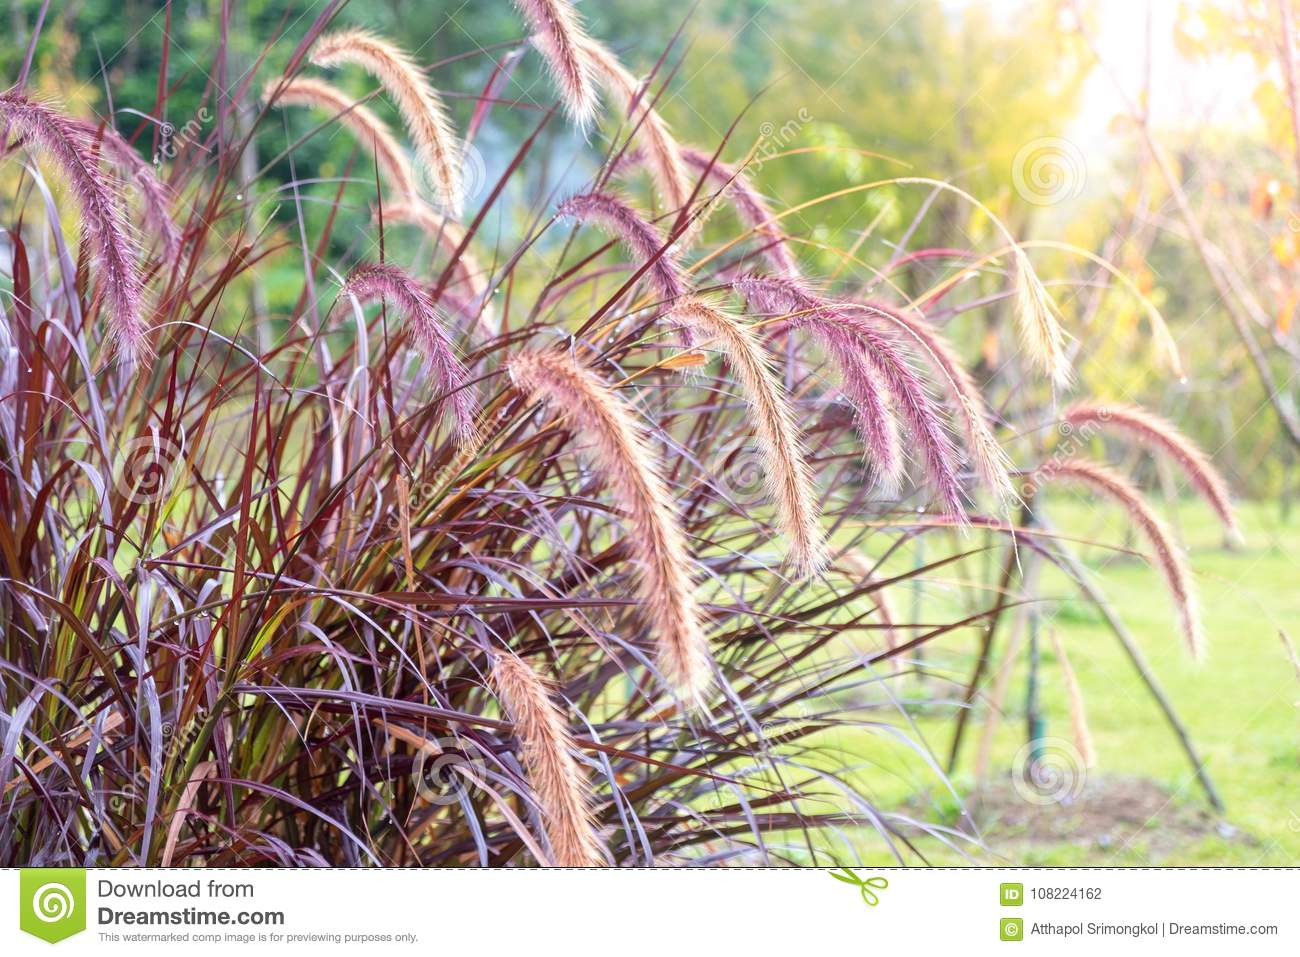 Clump grasses, flowers and grass in the morning with sun light